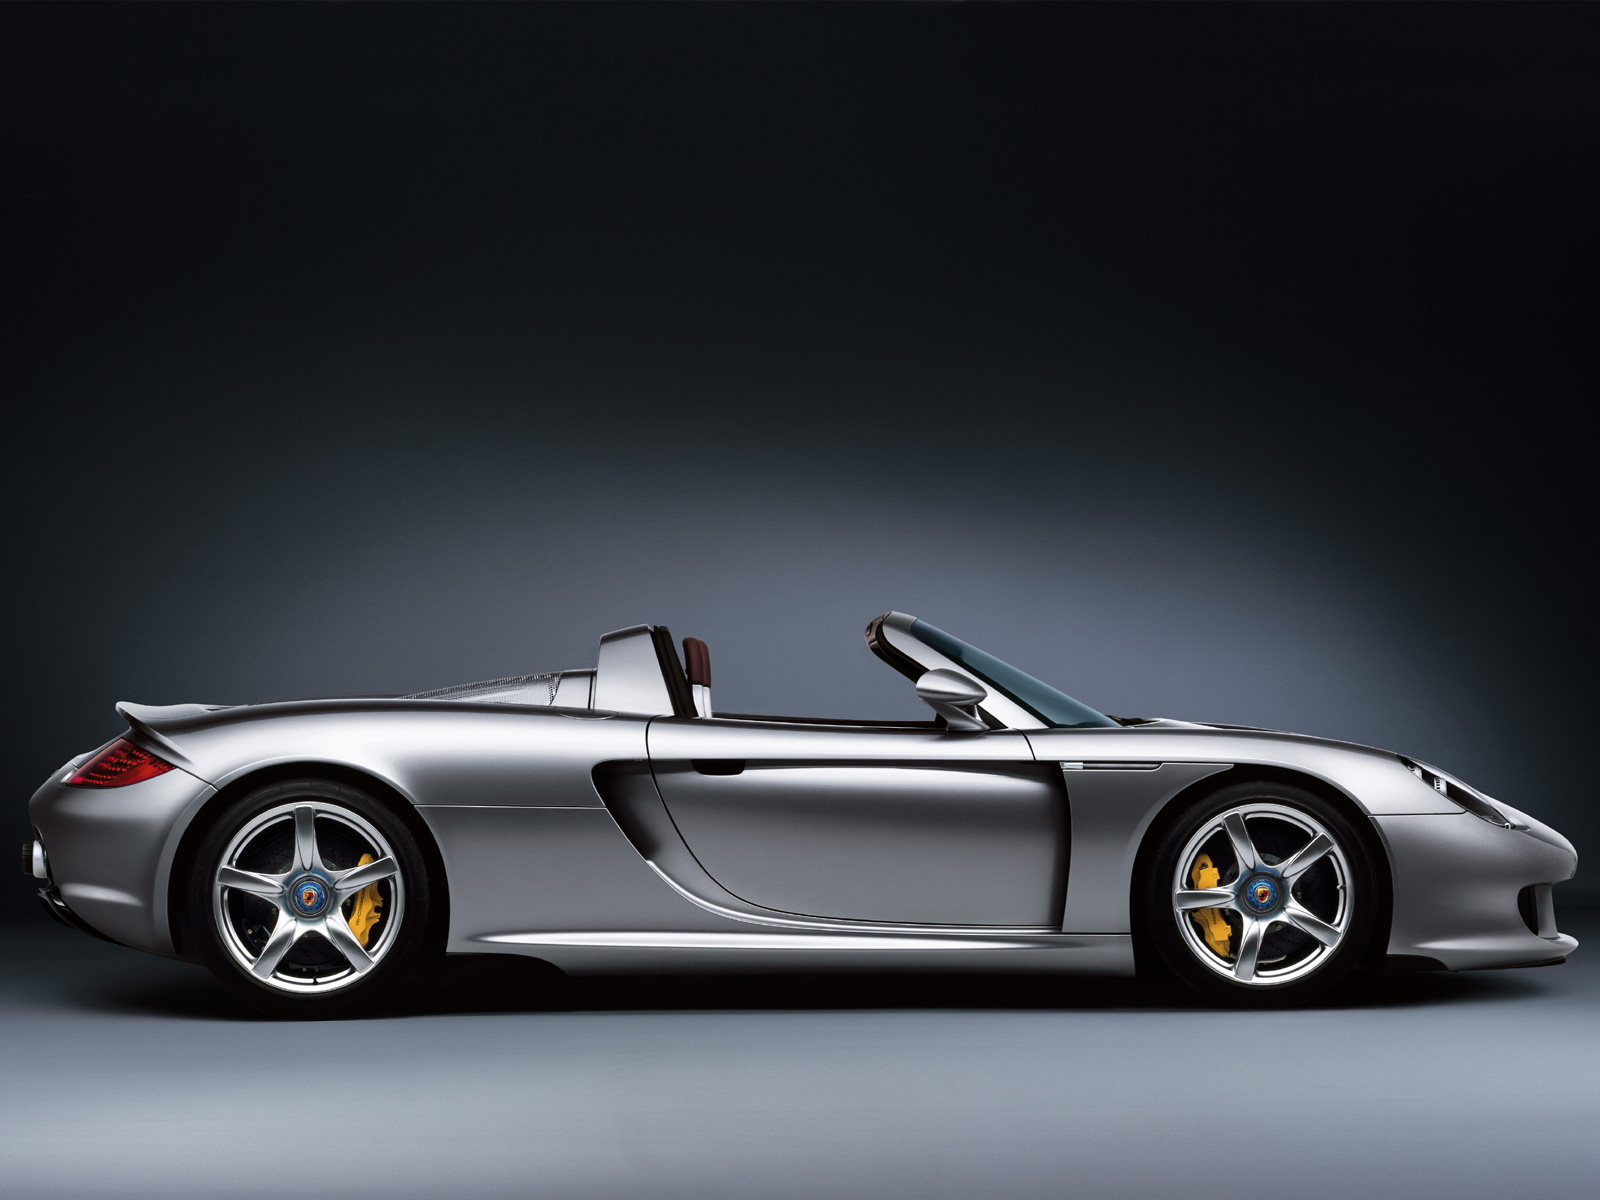 Porsche Carrera GT photo 8515